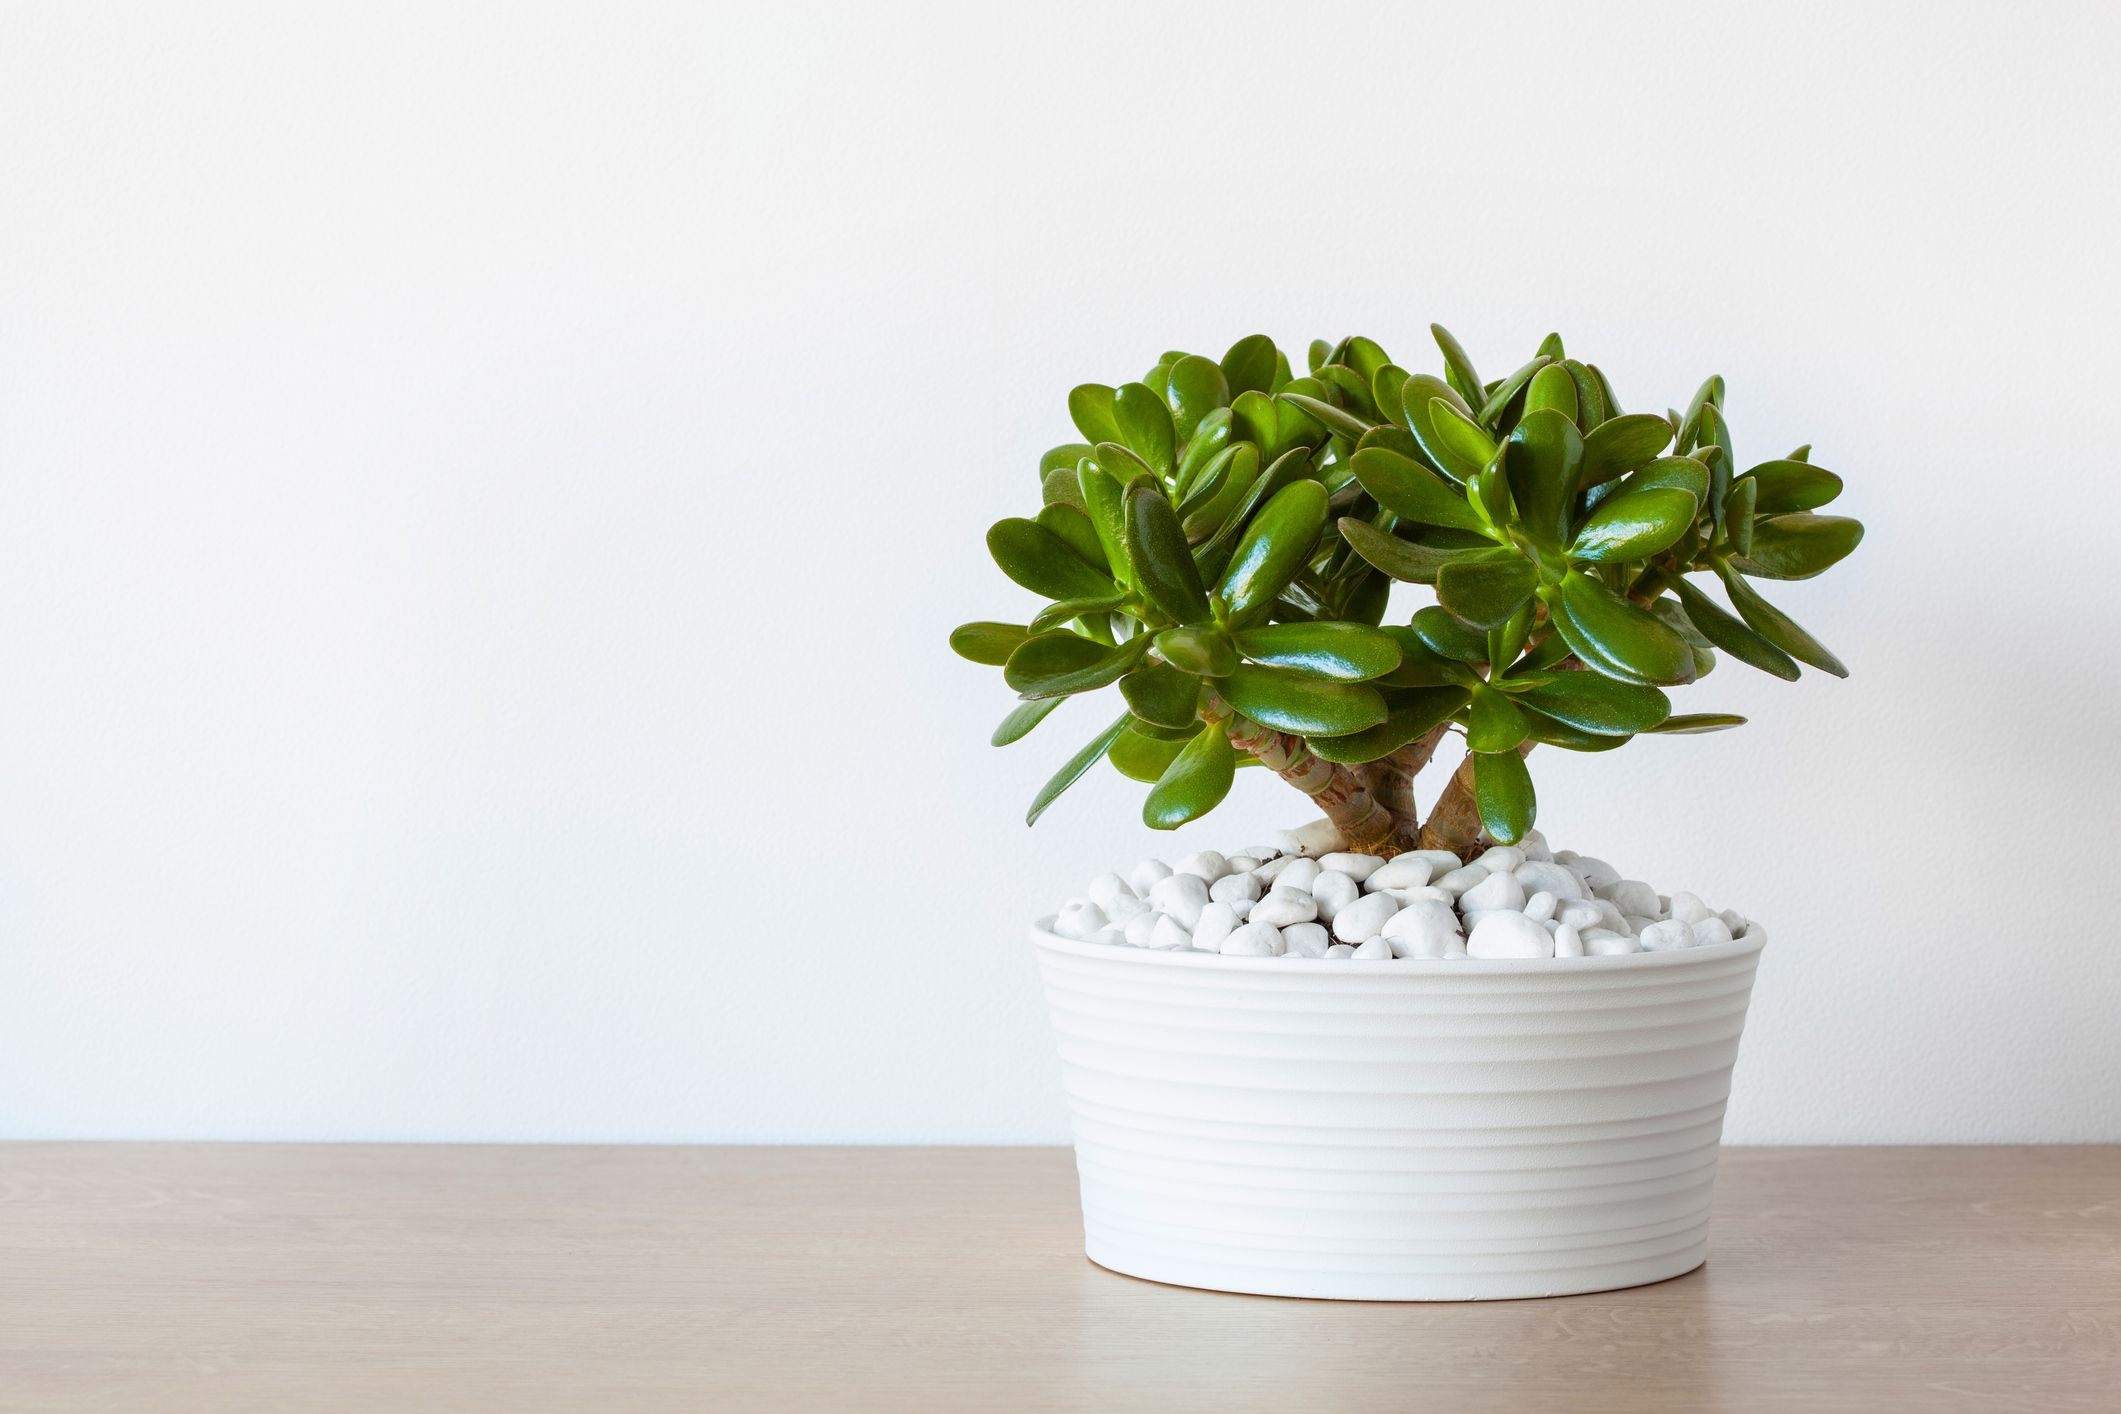 Jade Plant Care Growing Guide